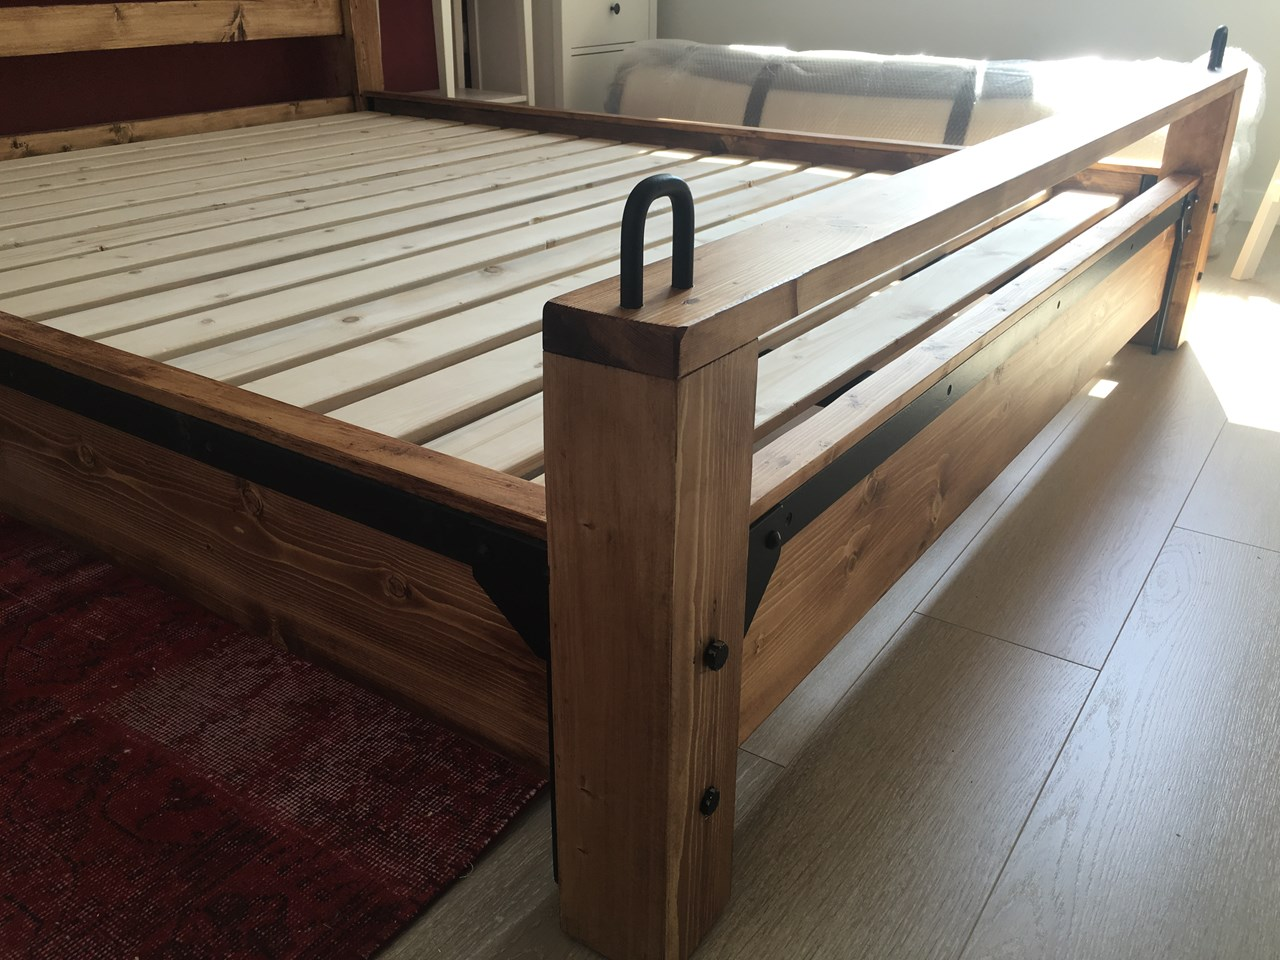 Retro Industrial Style Bedstead'in resmi